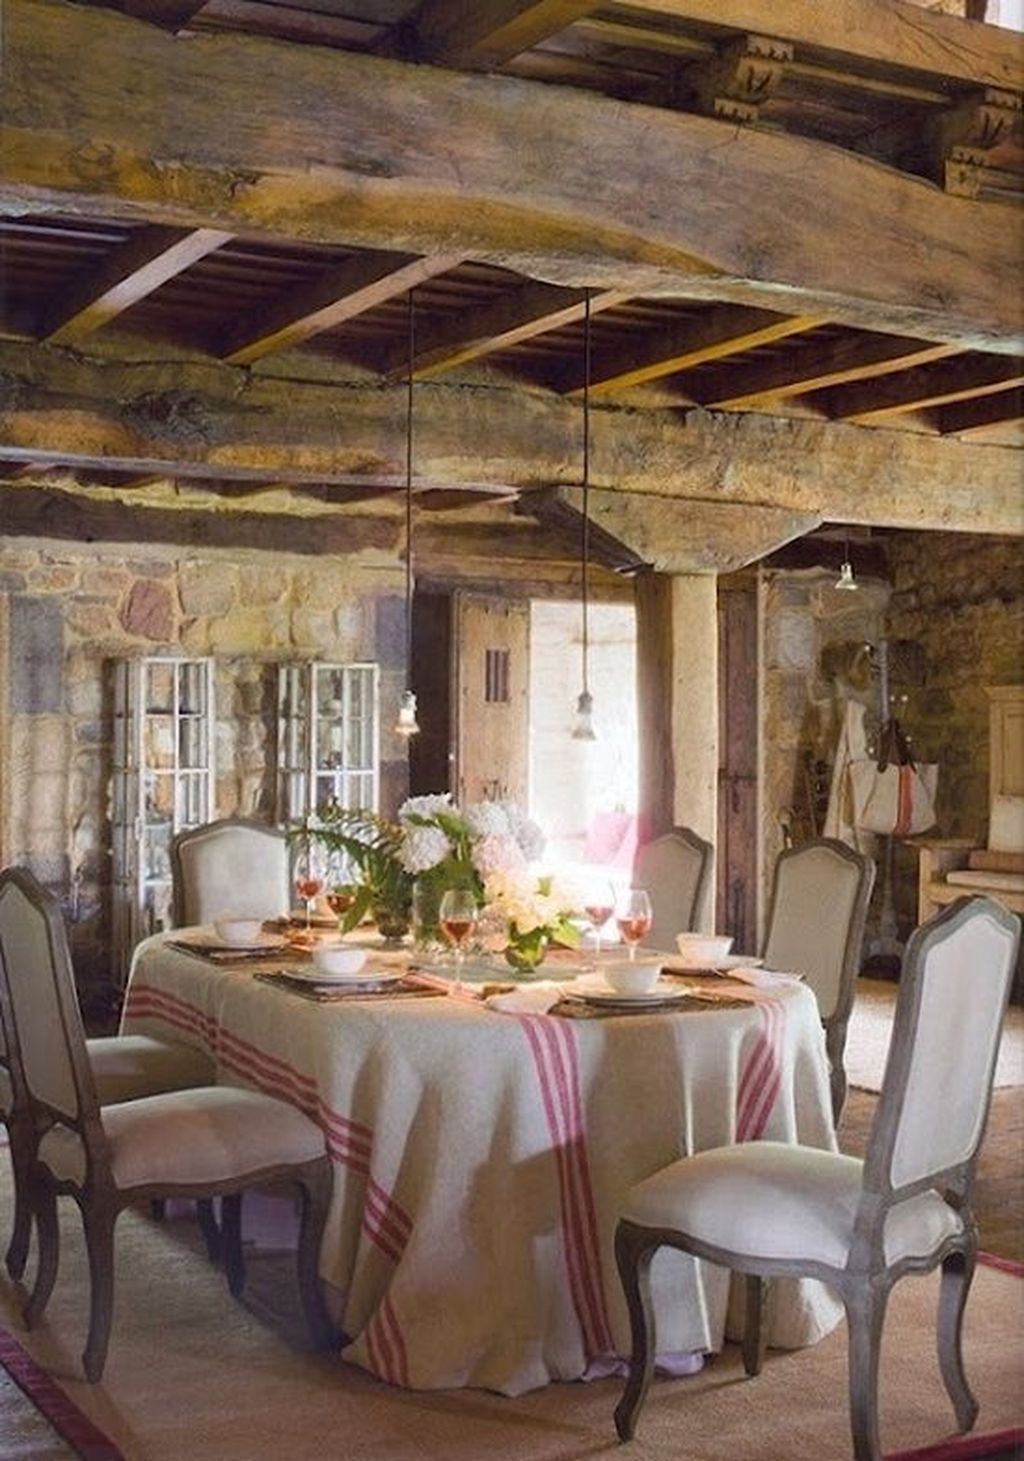 Stunning Romantic Dining Room Decor Ideas Best For Valentines Day 21